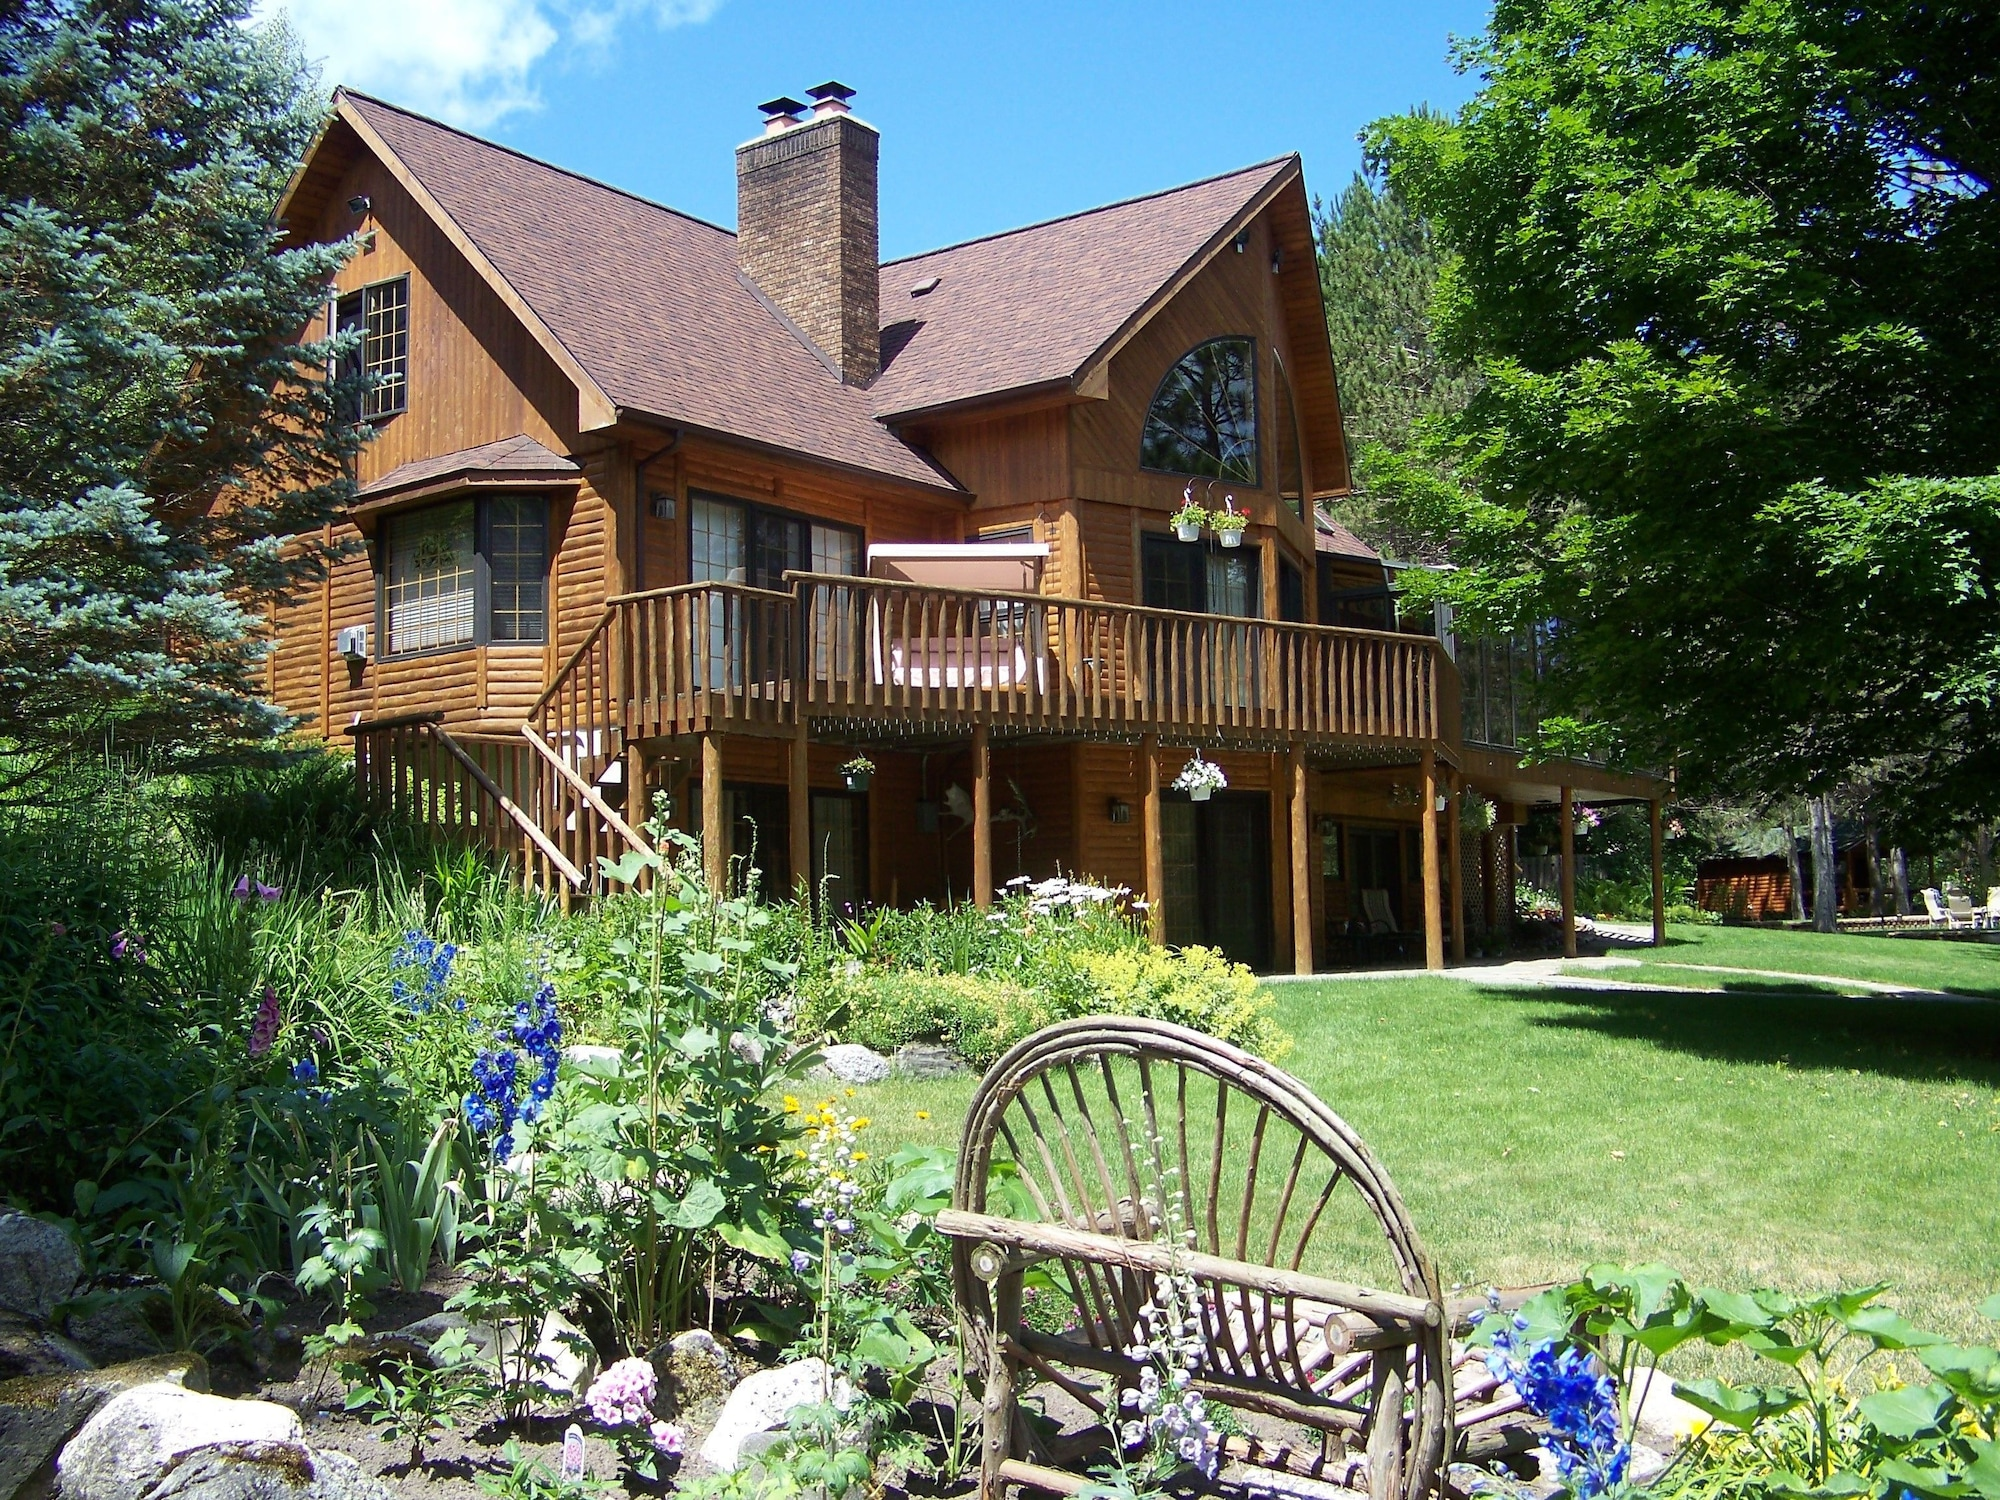 Horton Creek Inn Bed and Breakfast, Charlevoix